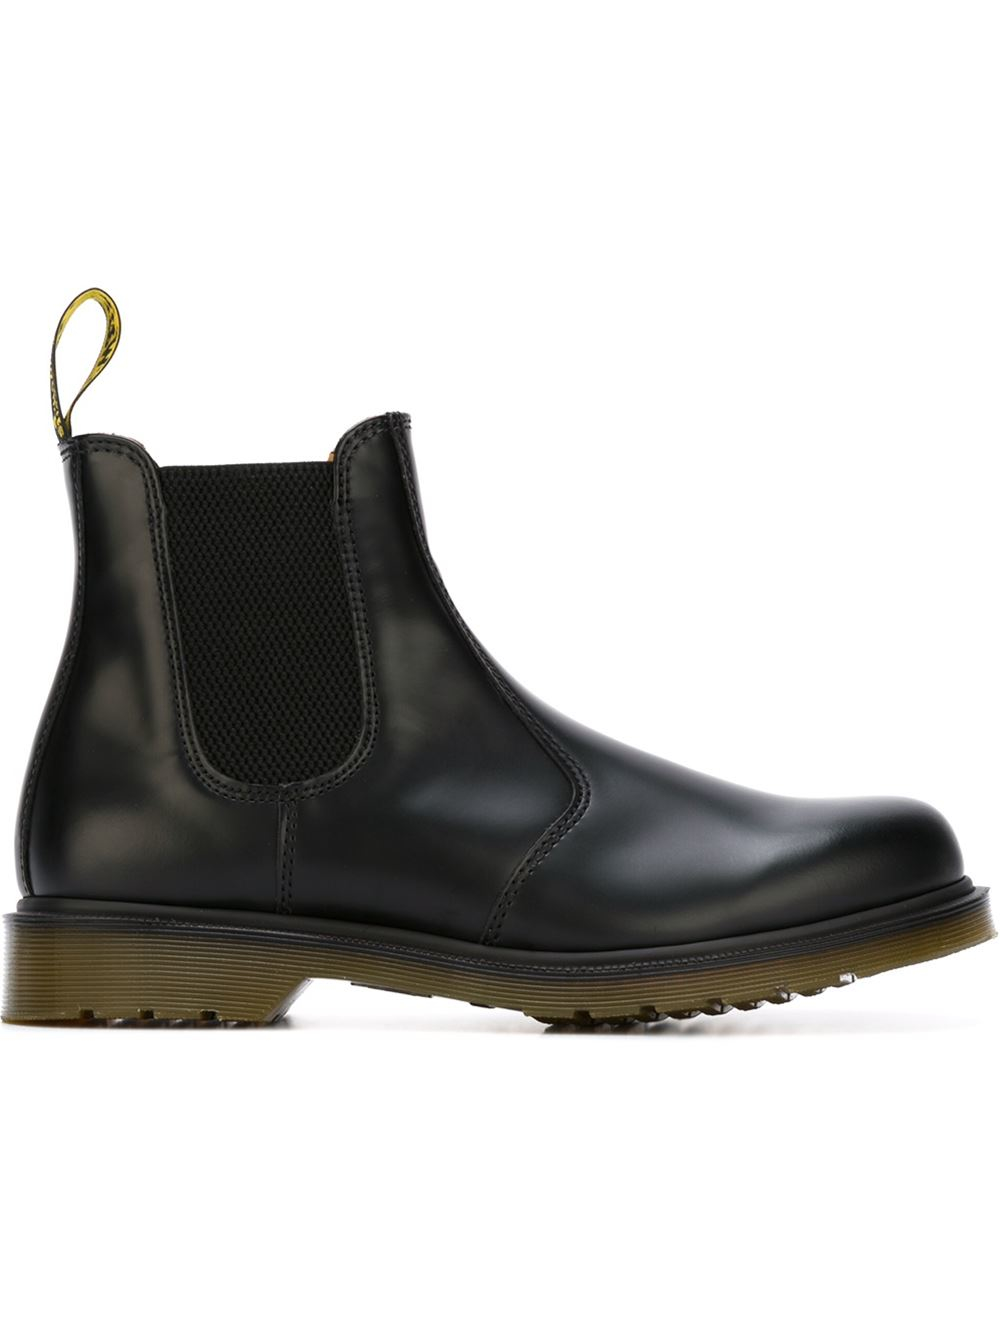 dr martens 39 chelsea 39 boots in black for men lyst. Black Bedroom Furniture Sets. Home Design Ideas